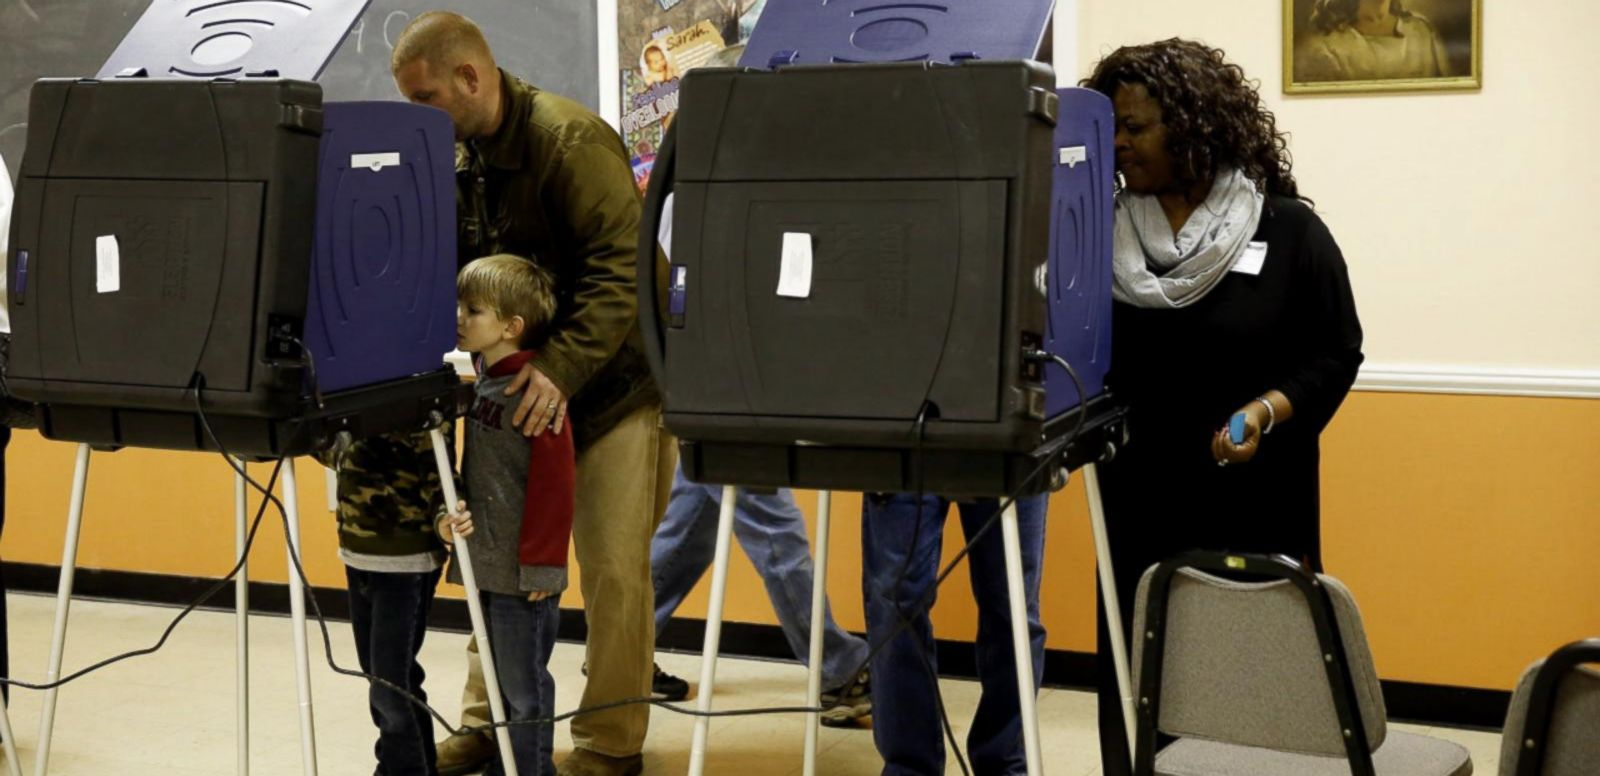 VIDEO: South Carolina and Nevada Vote 2016: Everything You Need to Know